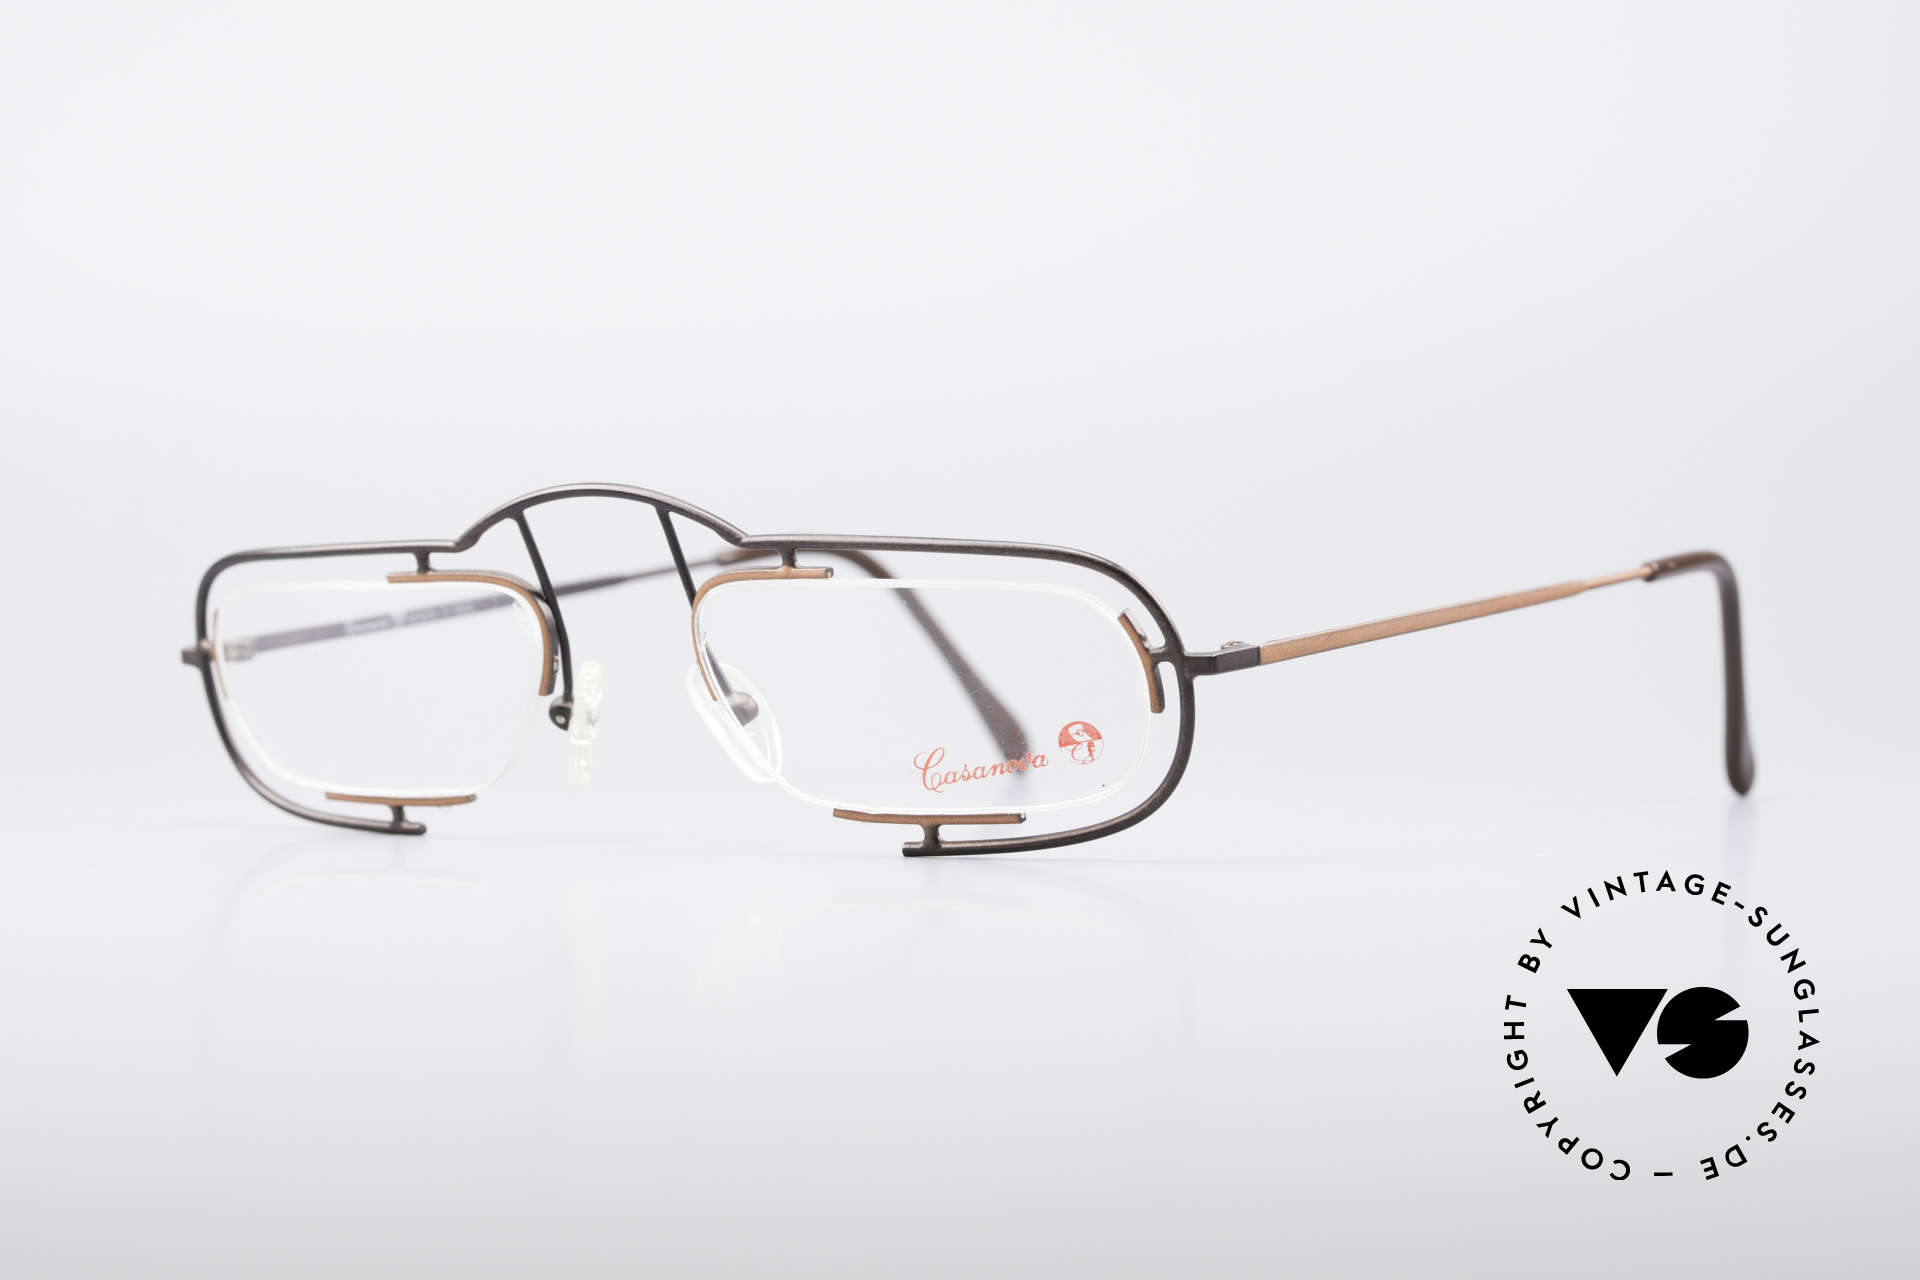 Casanova Clayberg Rare Vintage Eyglass Frame, premium quality (lightweight) & pleasant to wear, Made for Men and Women